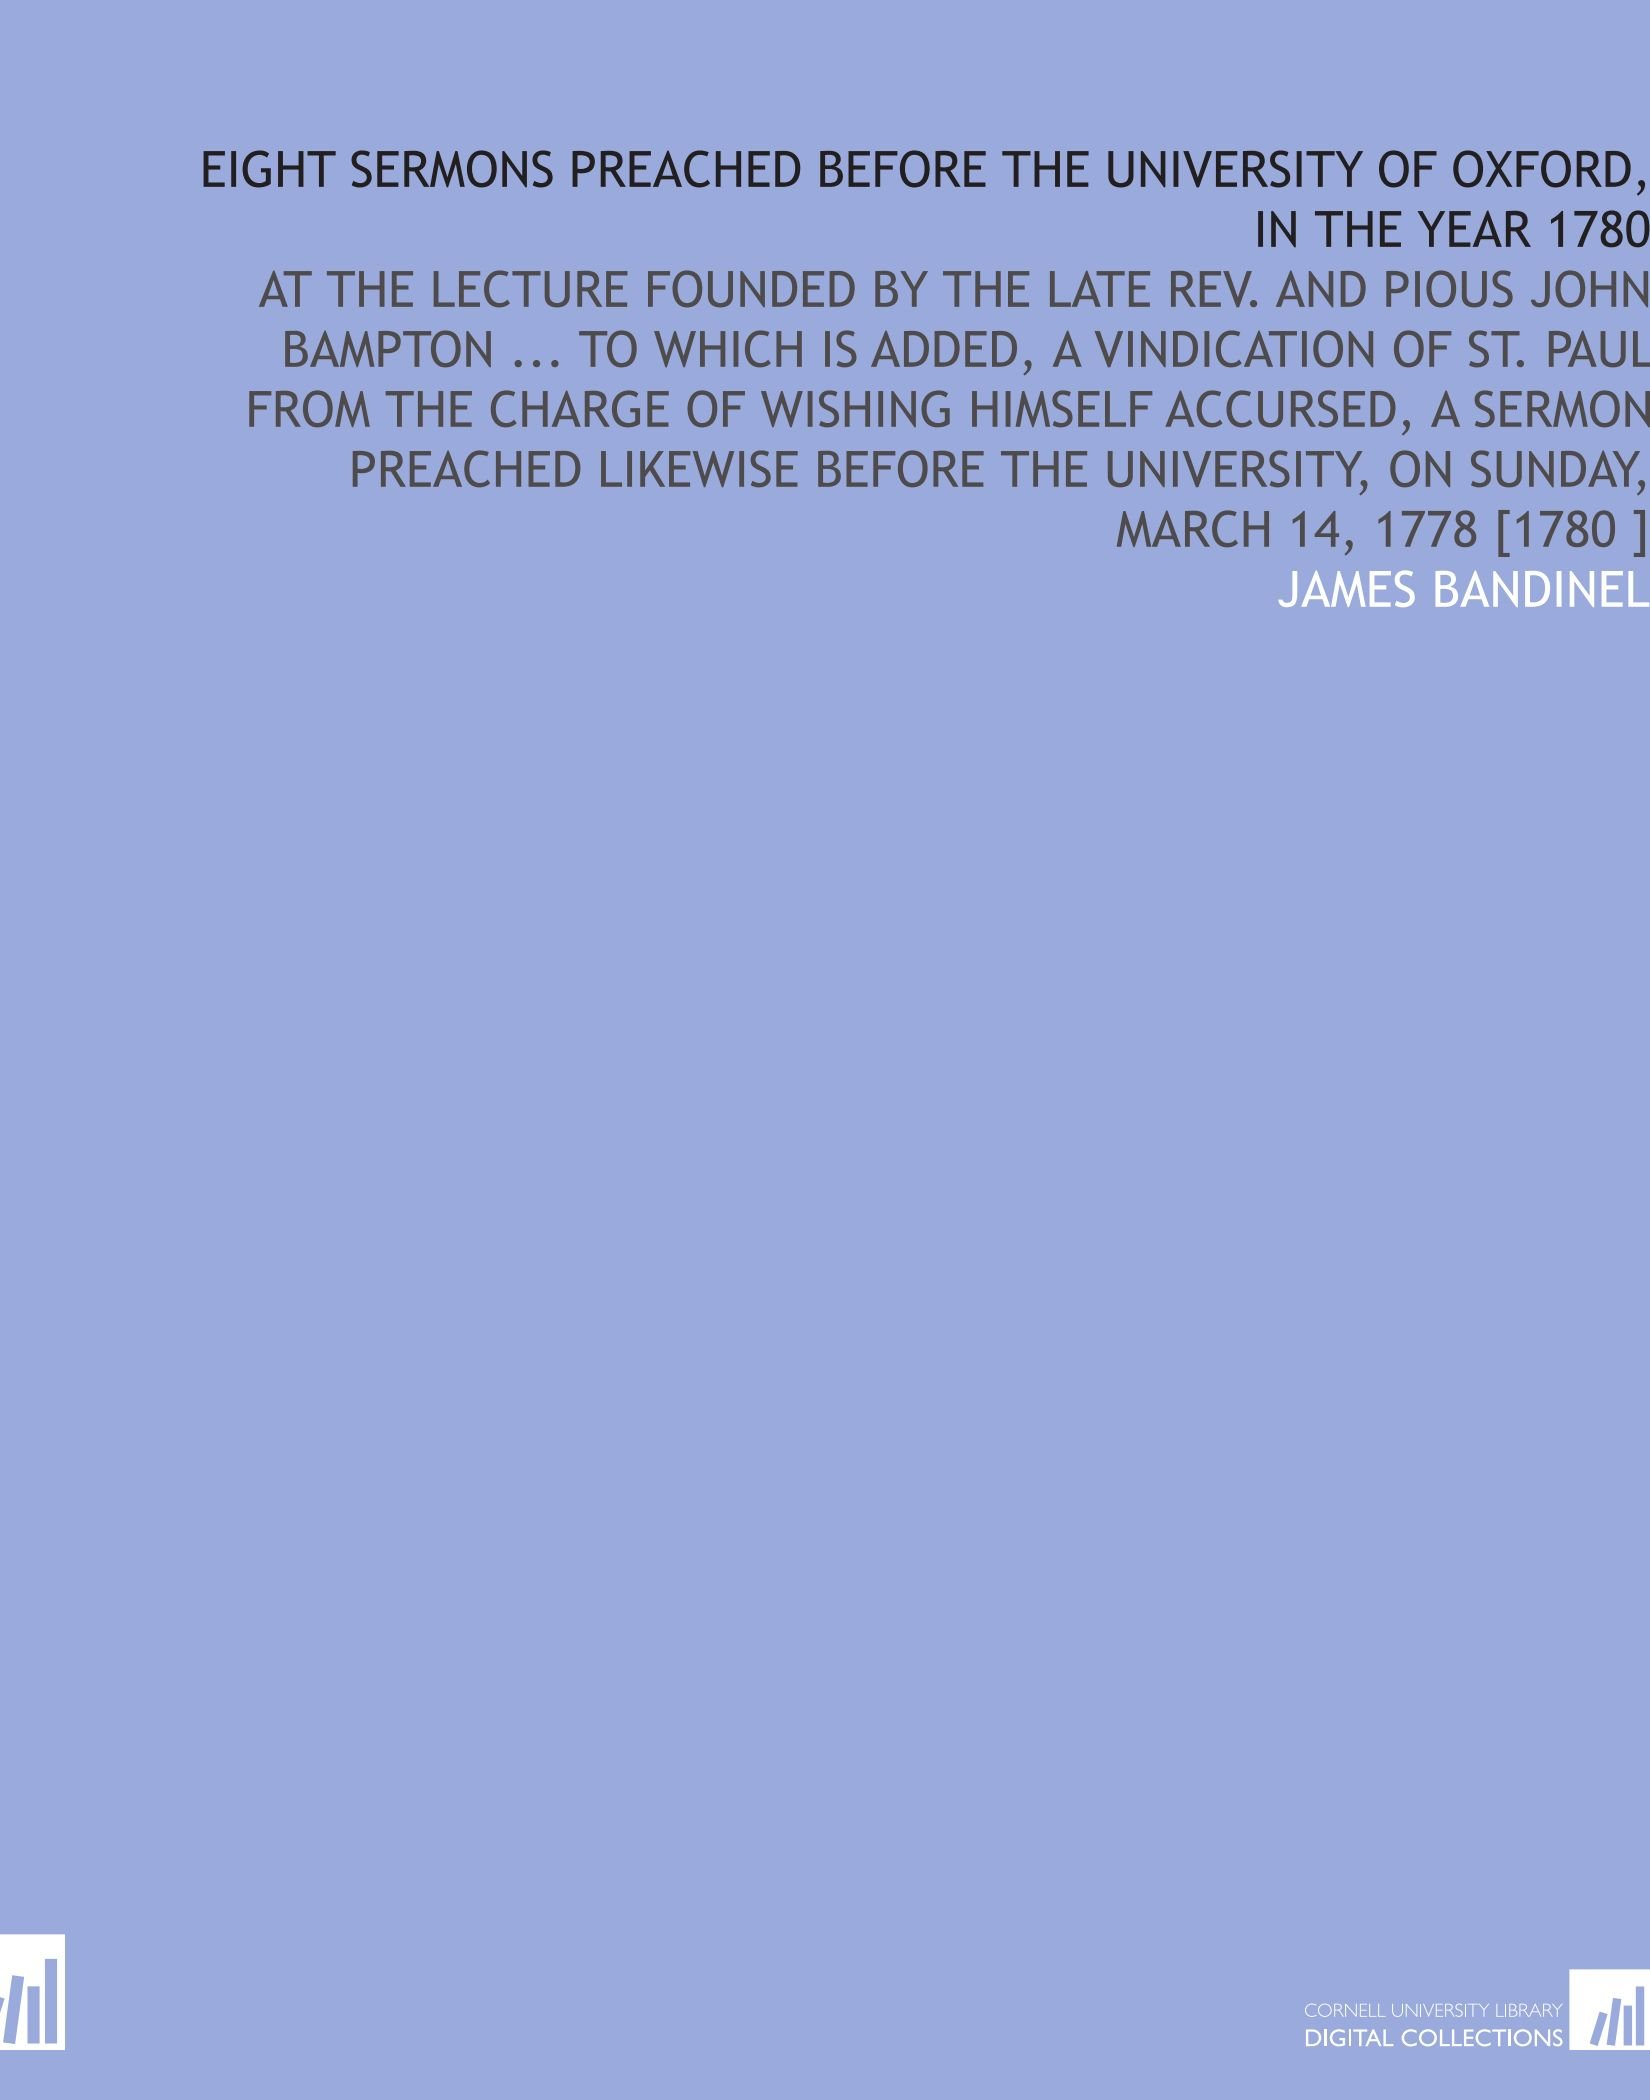 Download Eight Sermons Preached Before the University of Oxford, in the Year 1780: At the Lecture Founded by the Late Rev. And Pious John Bampton ... To Which ... University, on Sunday, March 14, 1778 [1780 ] pdf epub